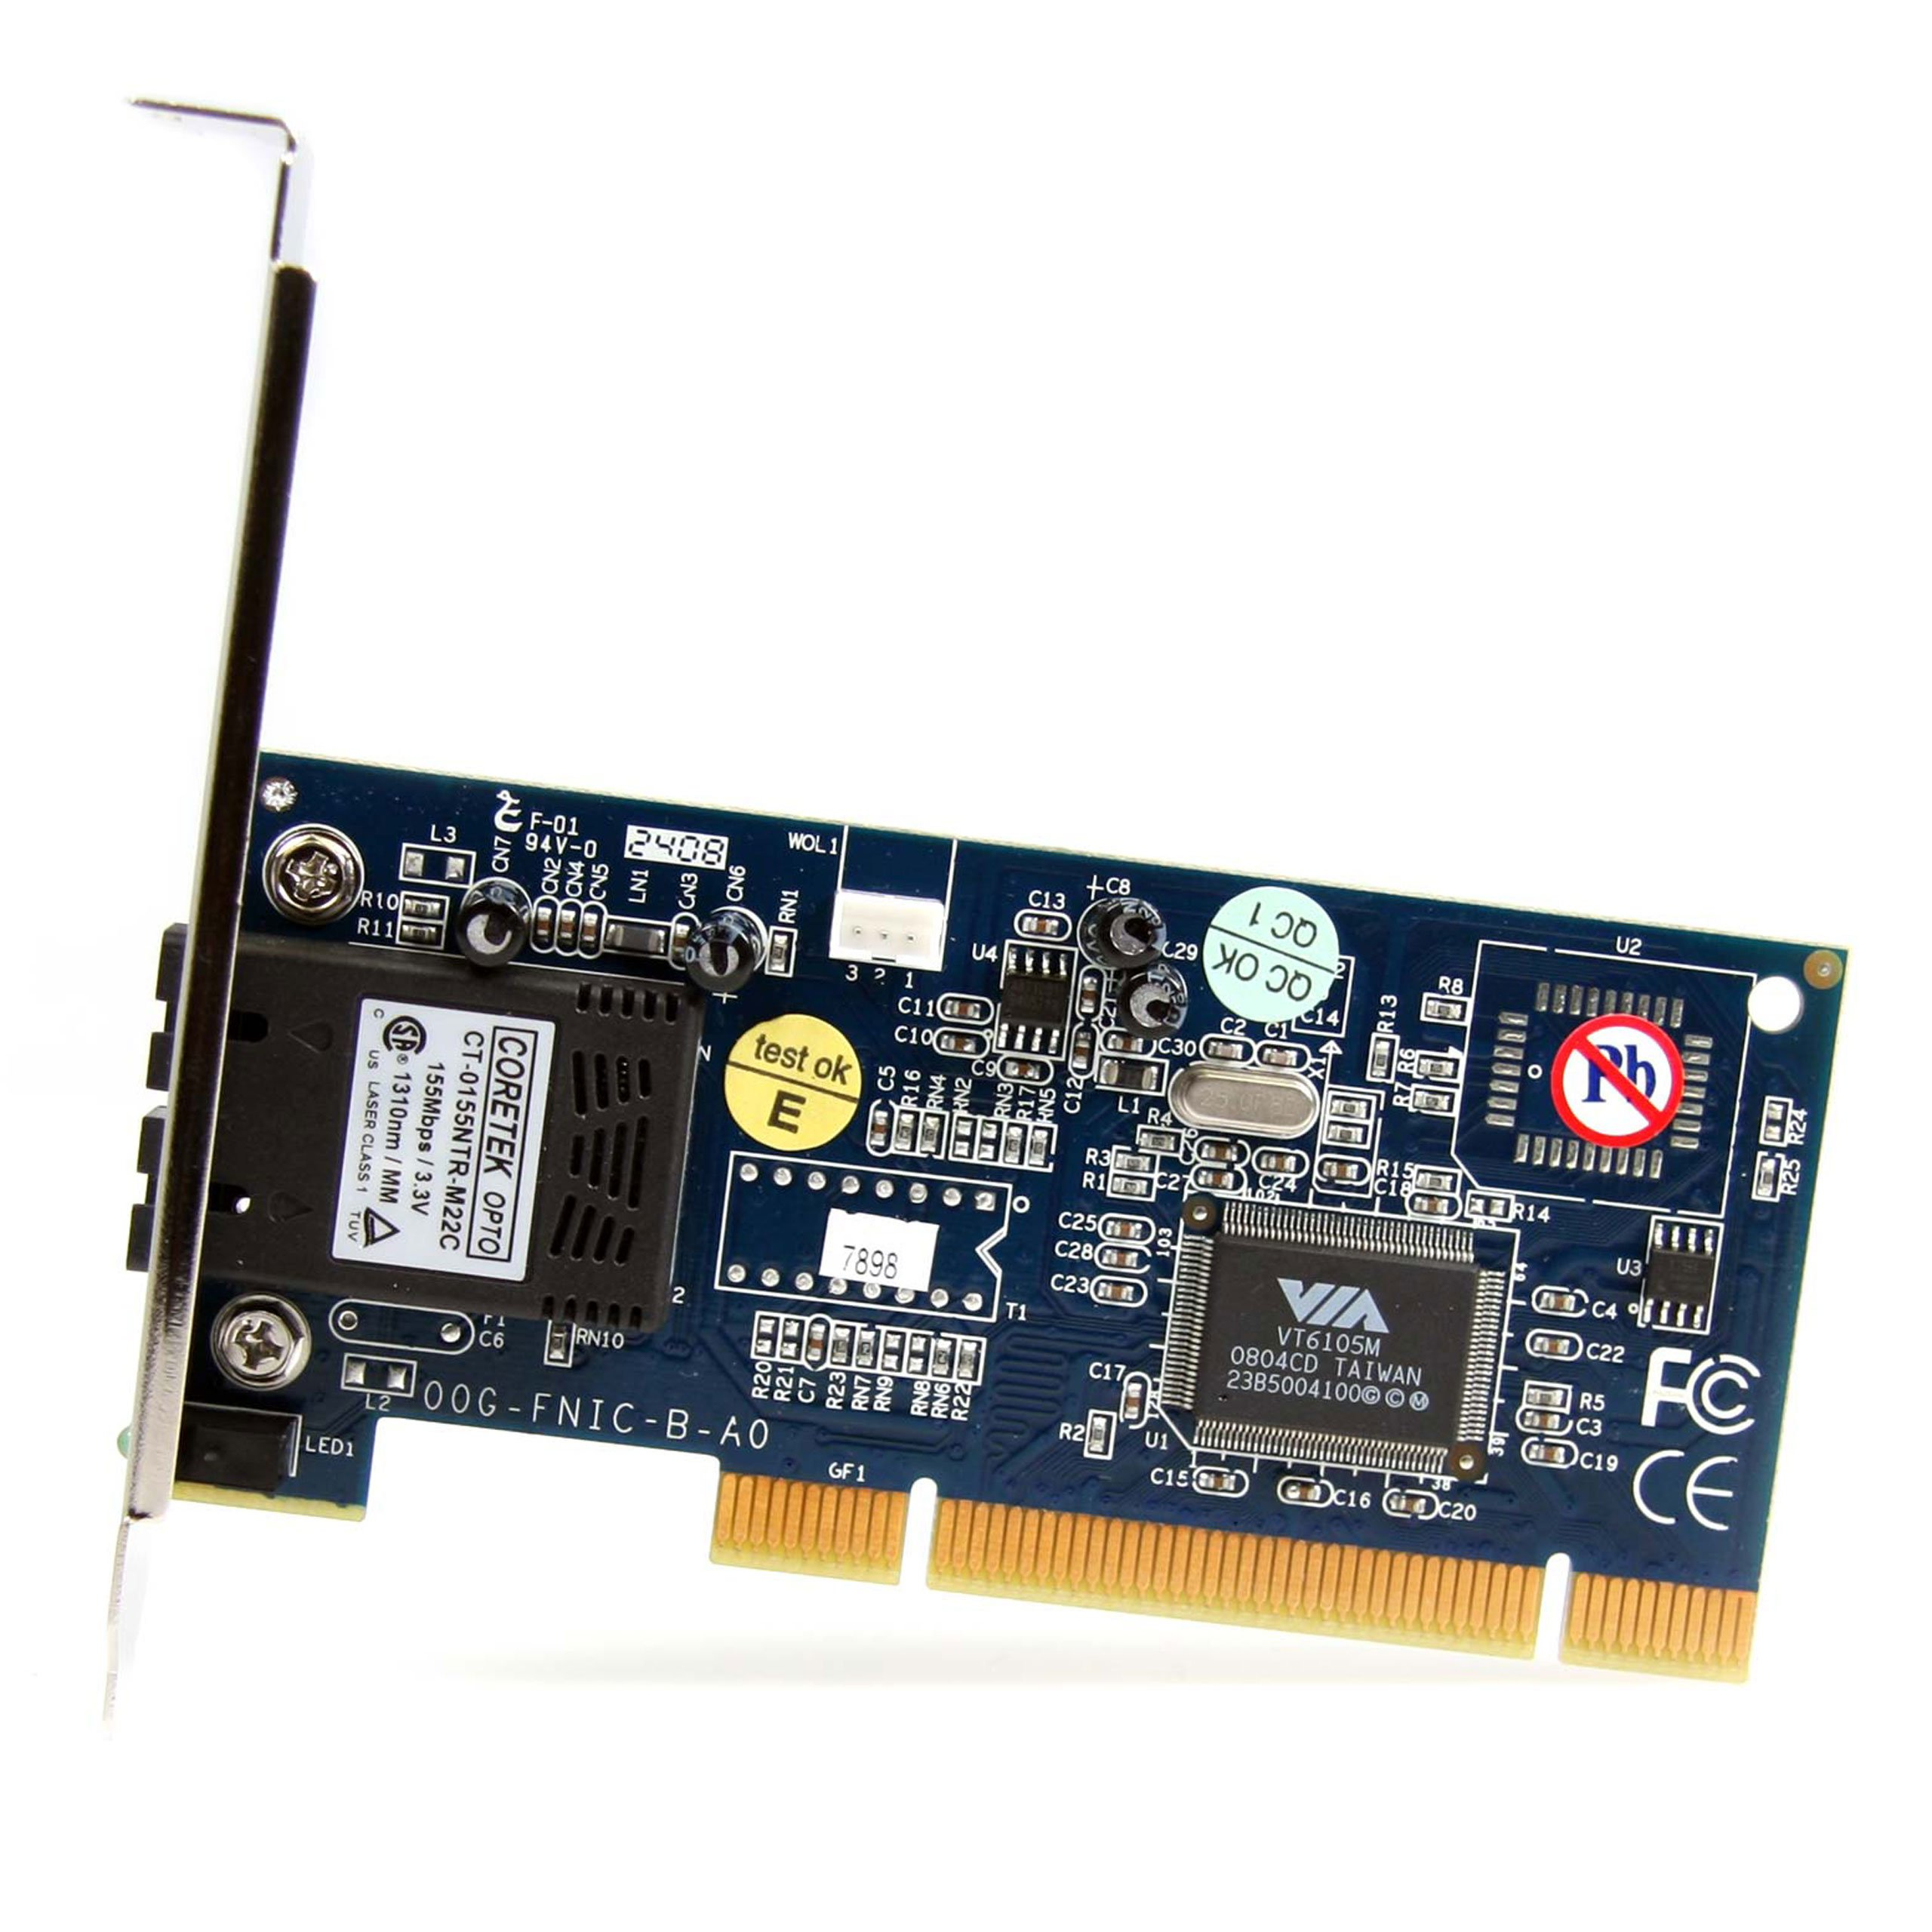 StarTech.com 100Mbps Full/Low Profile Ethernet Multi Mode SC Fiber PCI NIC Card - 2 KM (PCI100MMSC) by StarTech (Image #2)